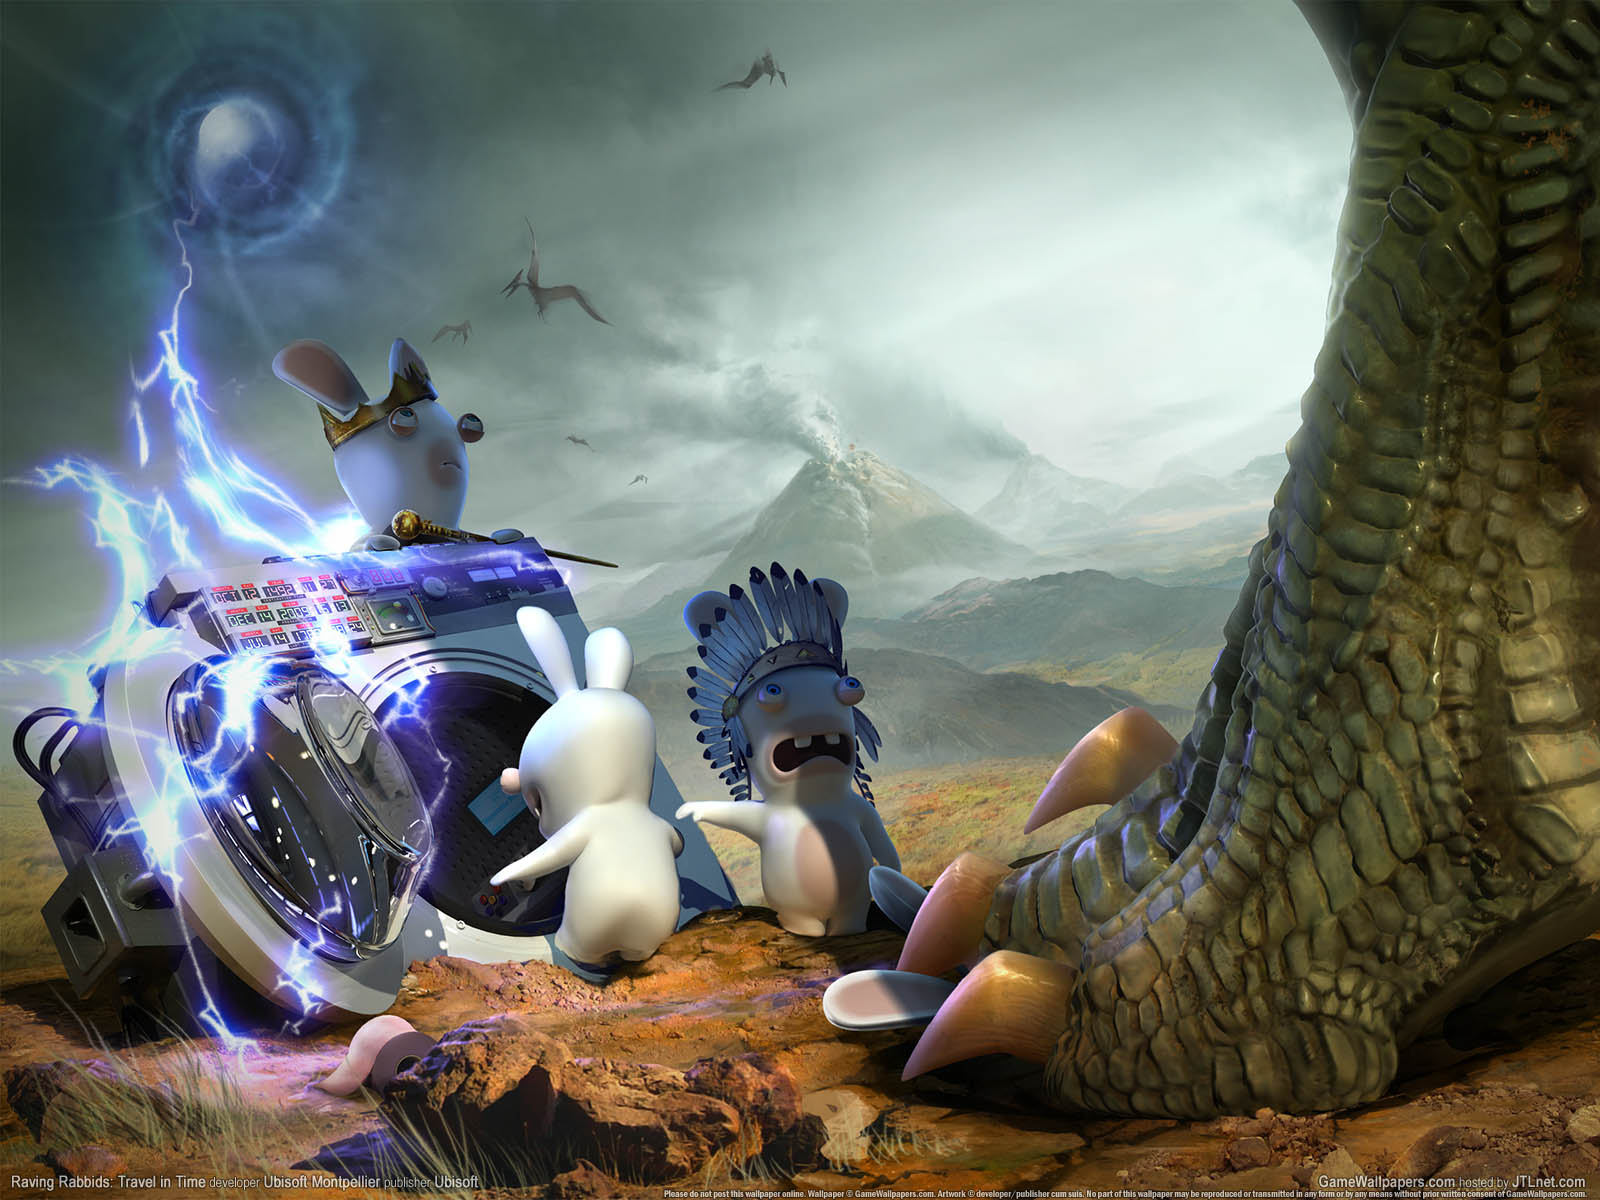 Raving Rabbids: Travel in Timeνmmer=01 achtergrond  1600x1200